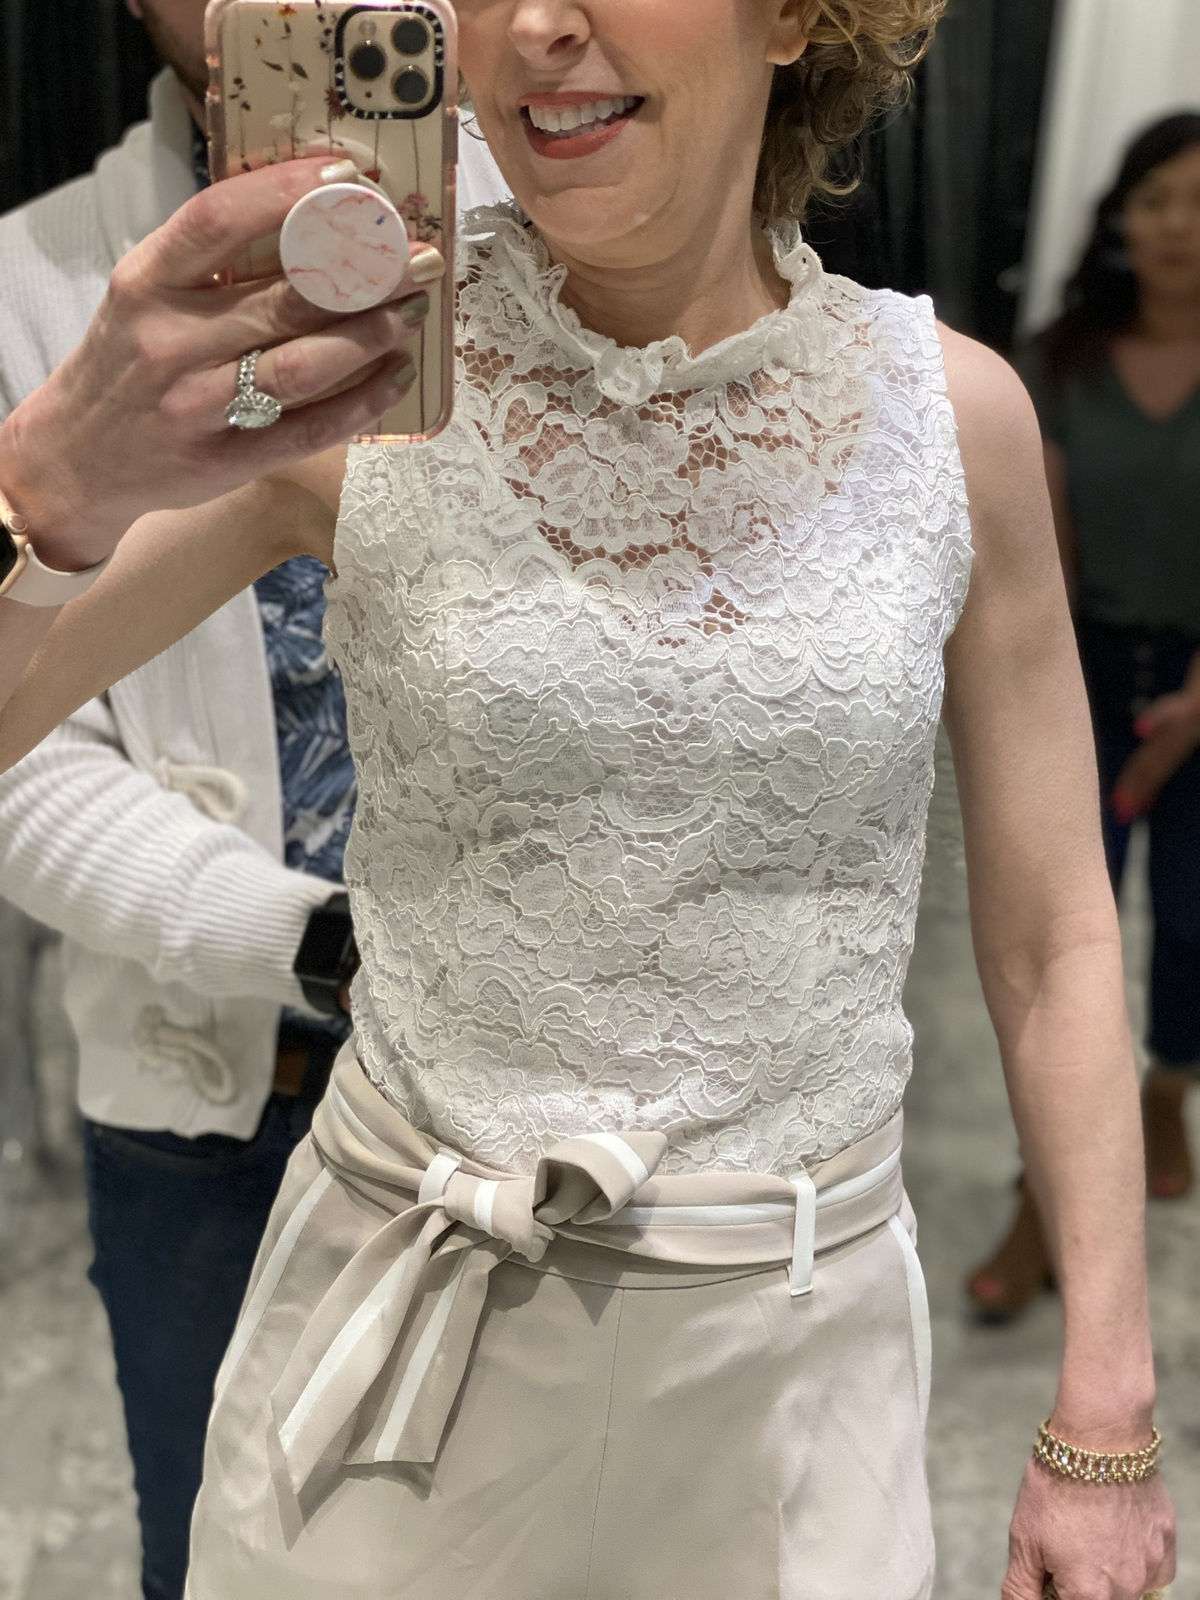 Mirror selfie of woman over 50 wearing white lace high neck top khaki shorts with white trim doing spring wardrobe update